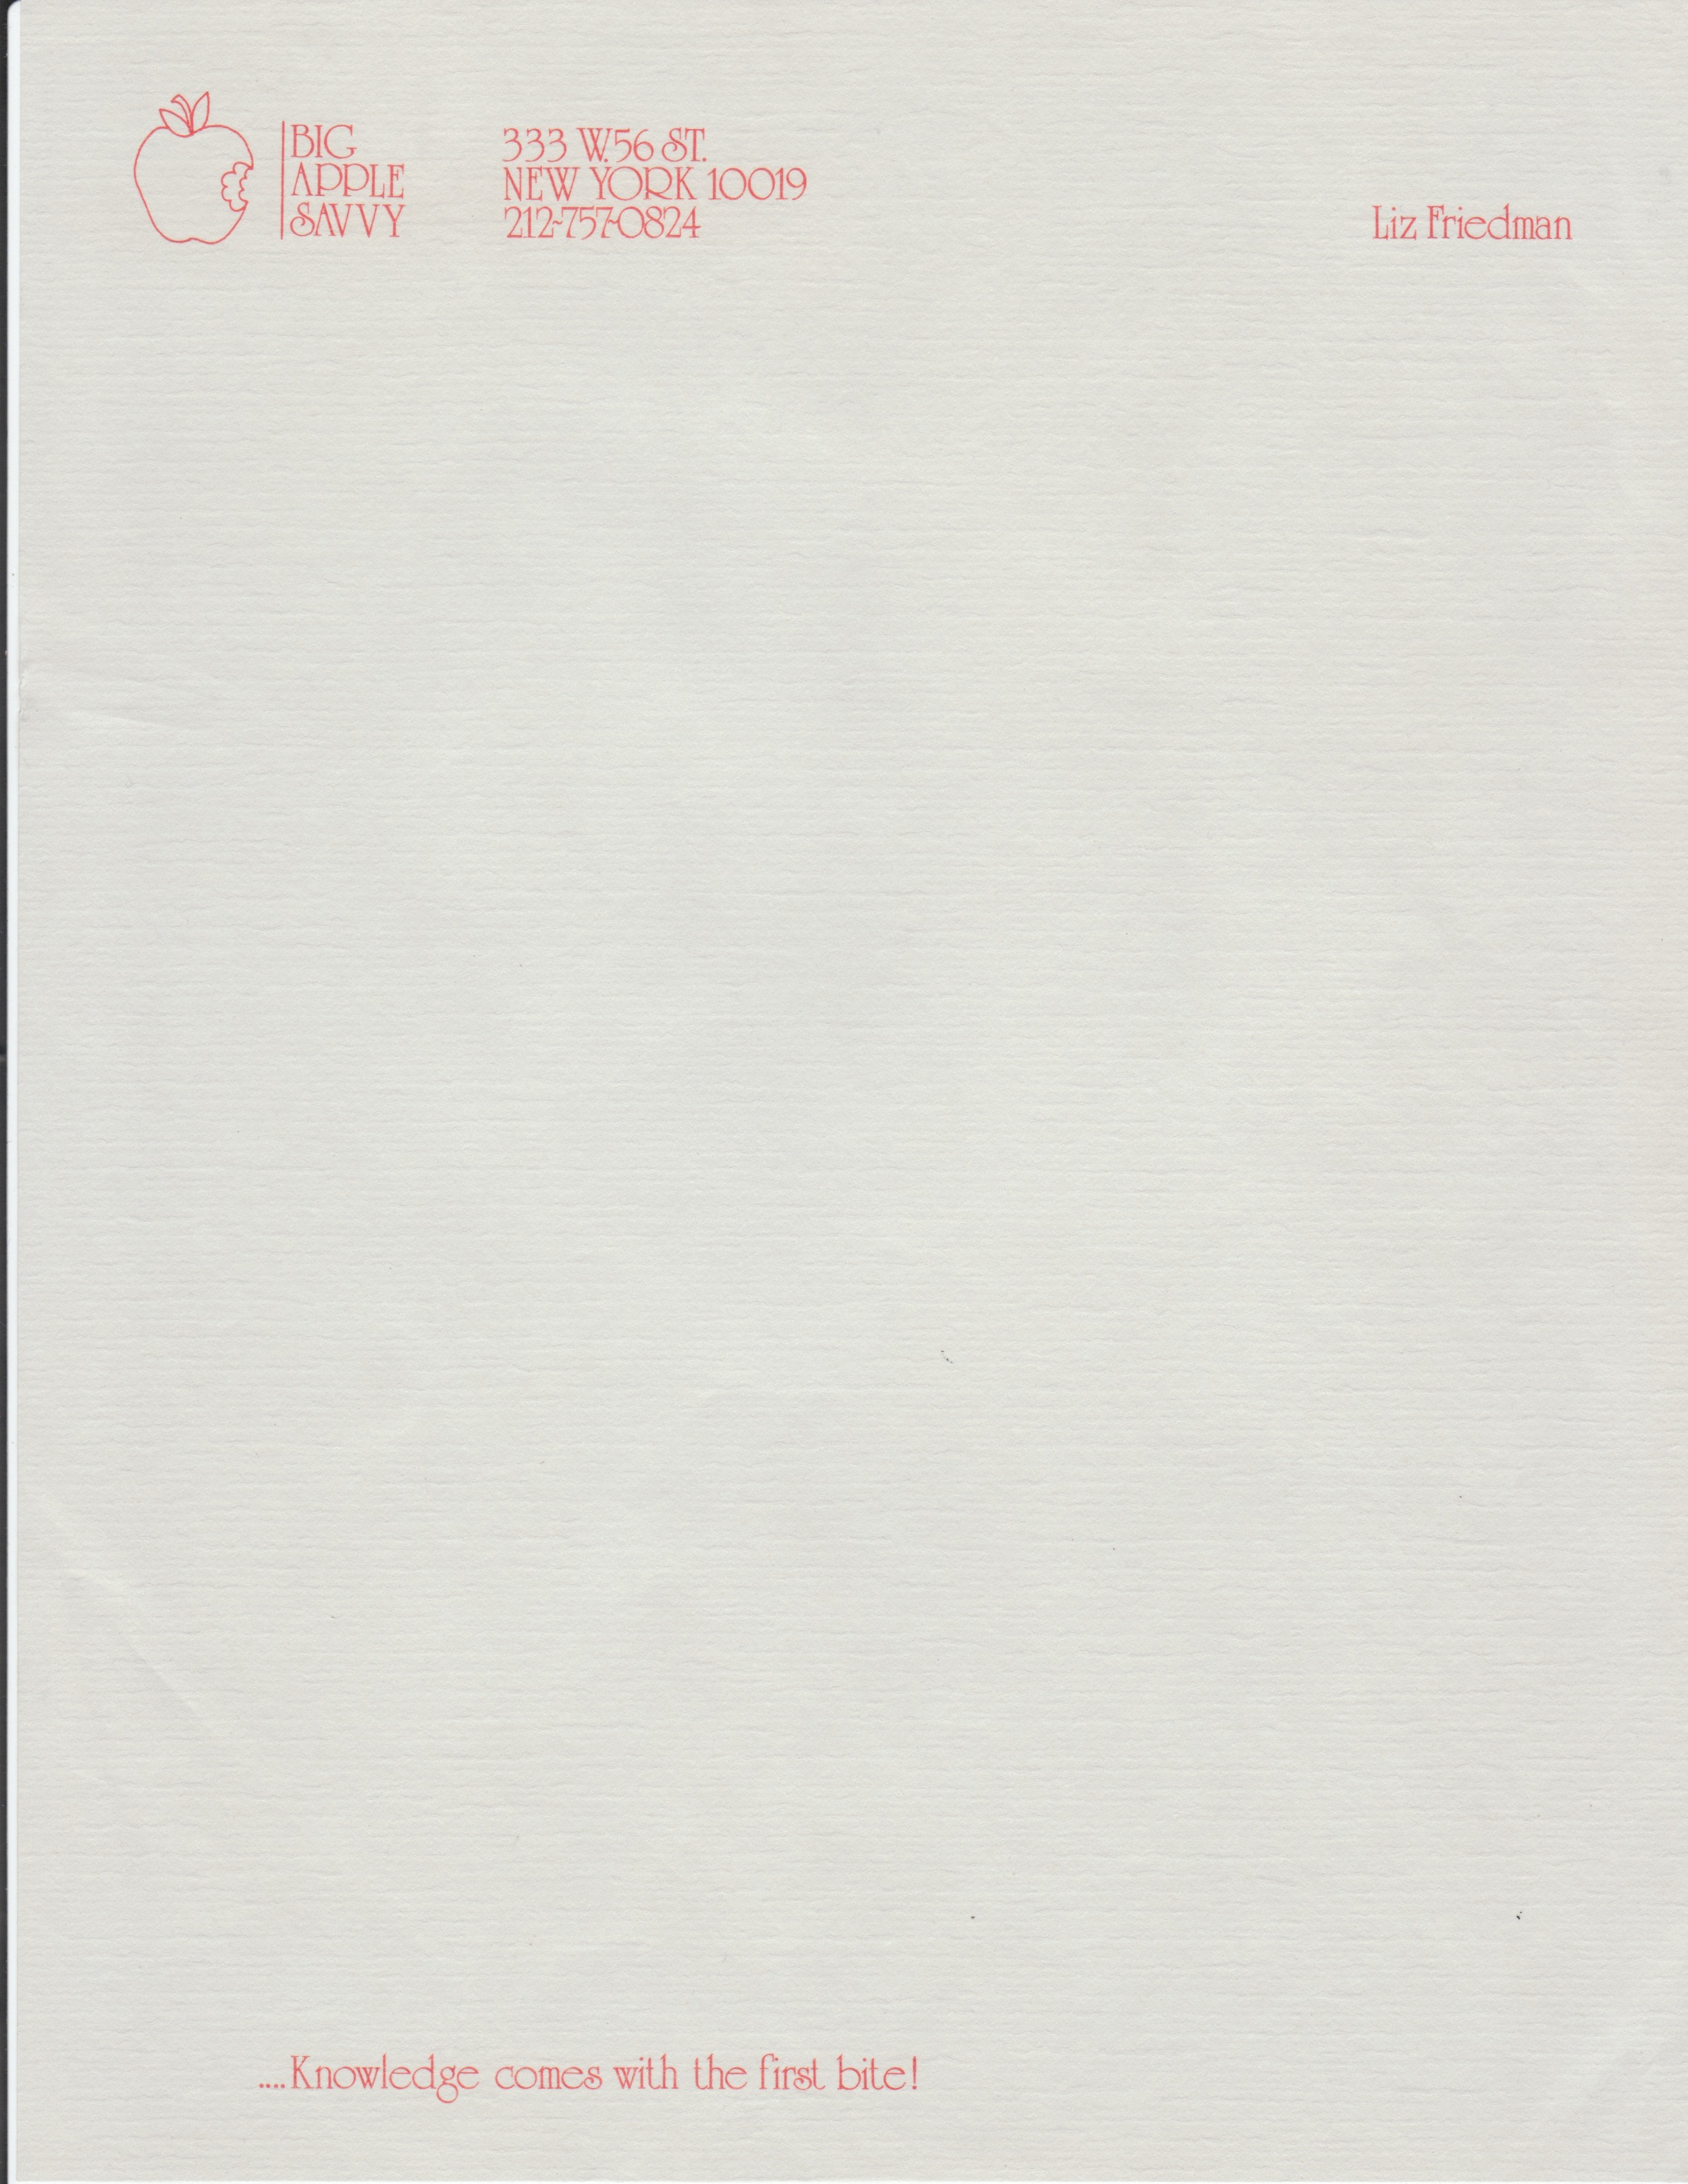 Big Apple Letterhead.jpg